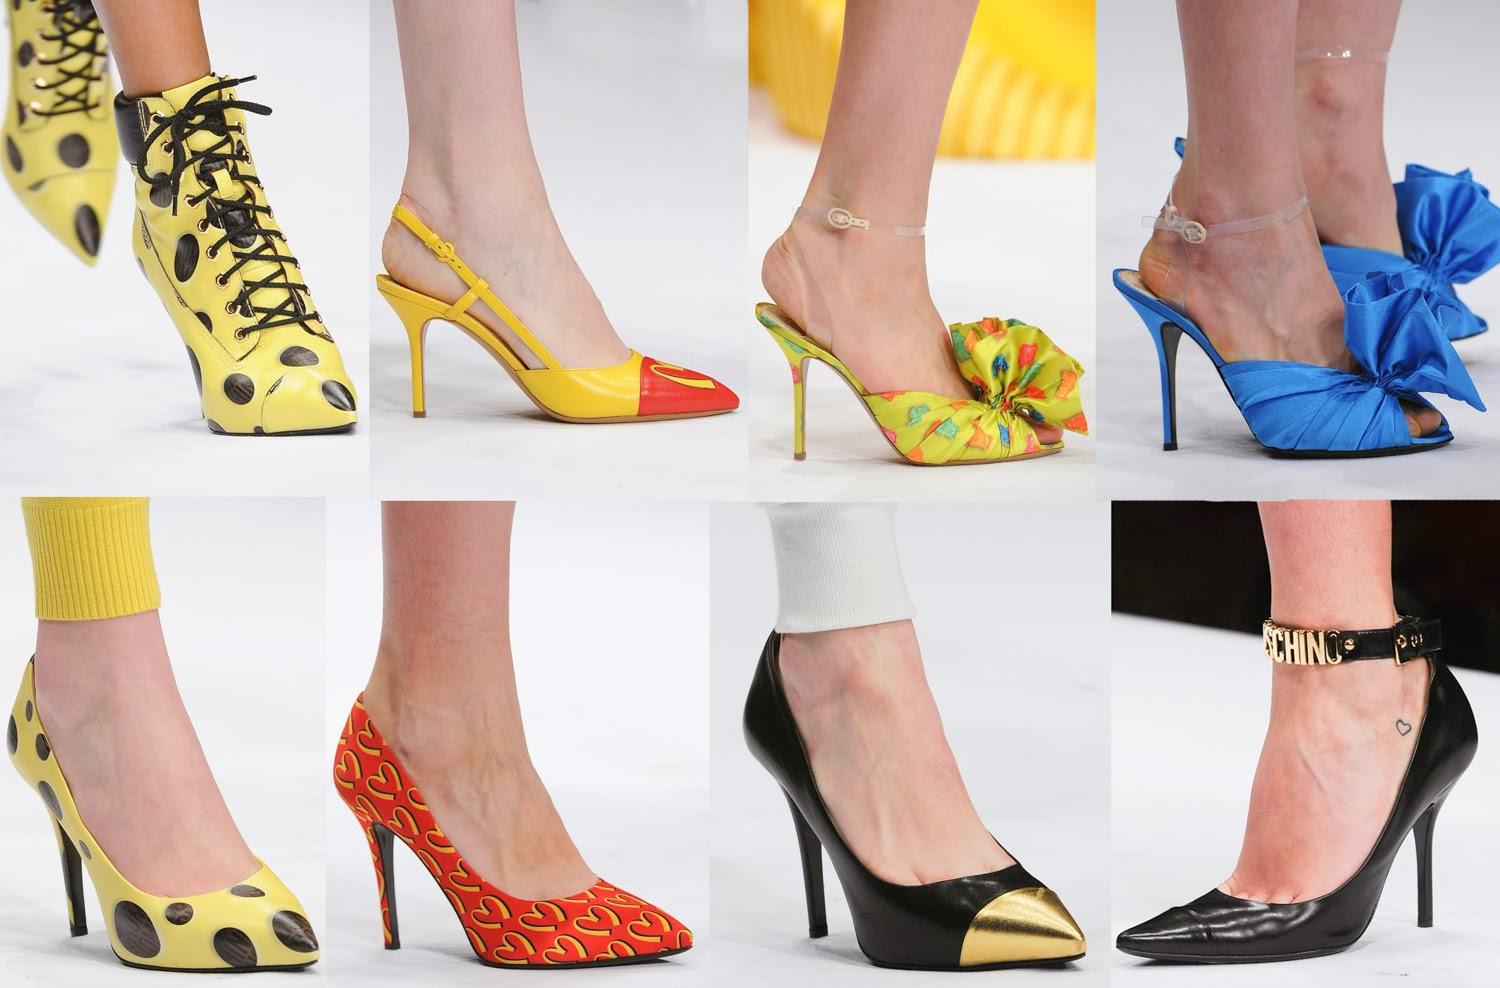 Moschino AW 2014 shoes